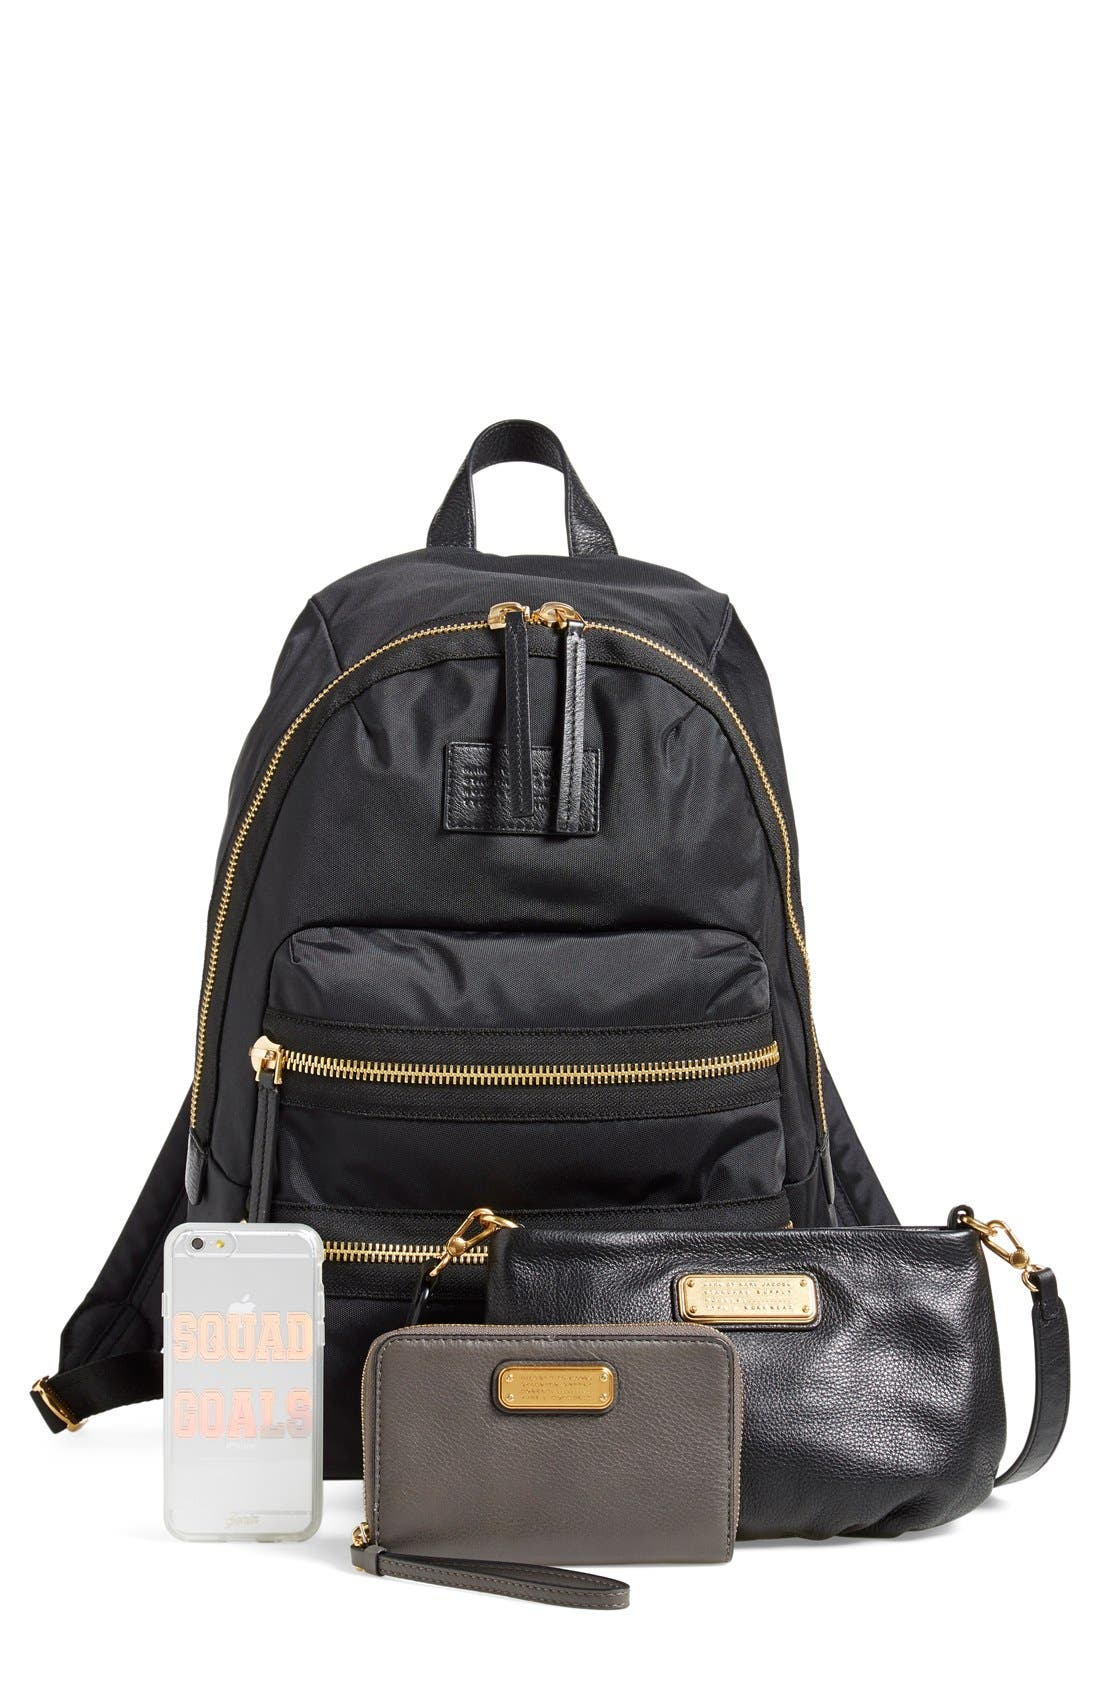 MARC BY MARC JACOBS 'Domo Arigato Packrat' Backpack,                             Alternate thumbnail 4, color,                             001